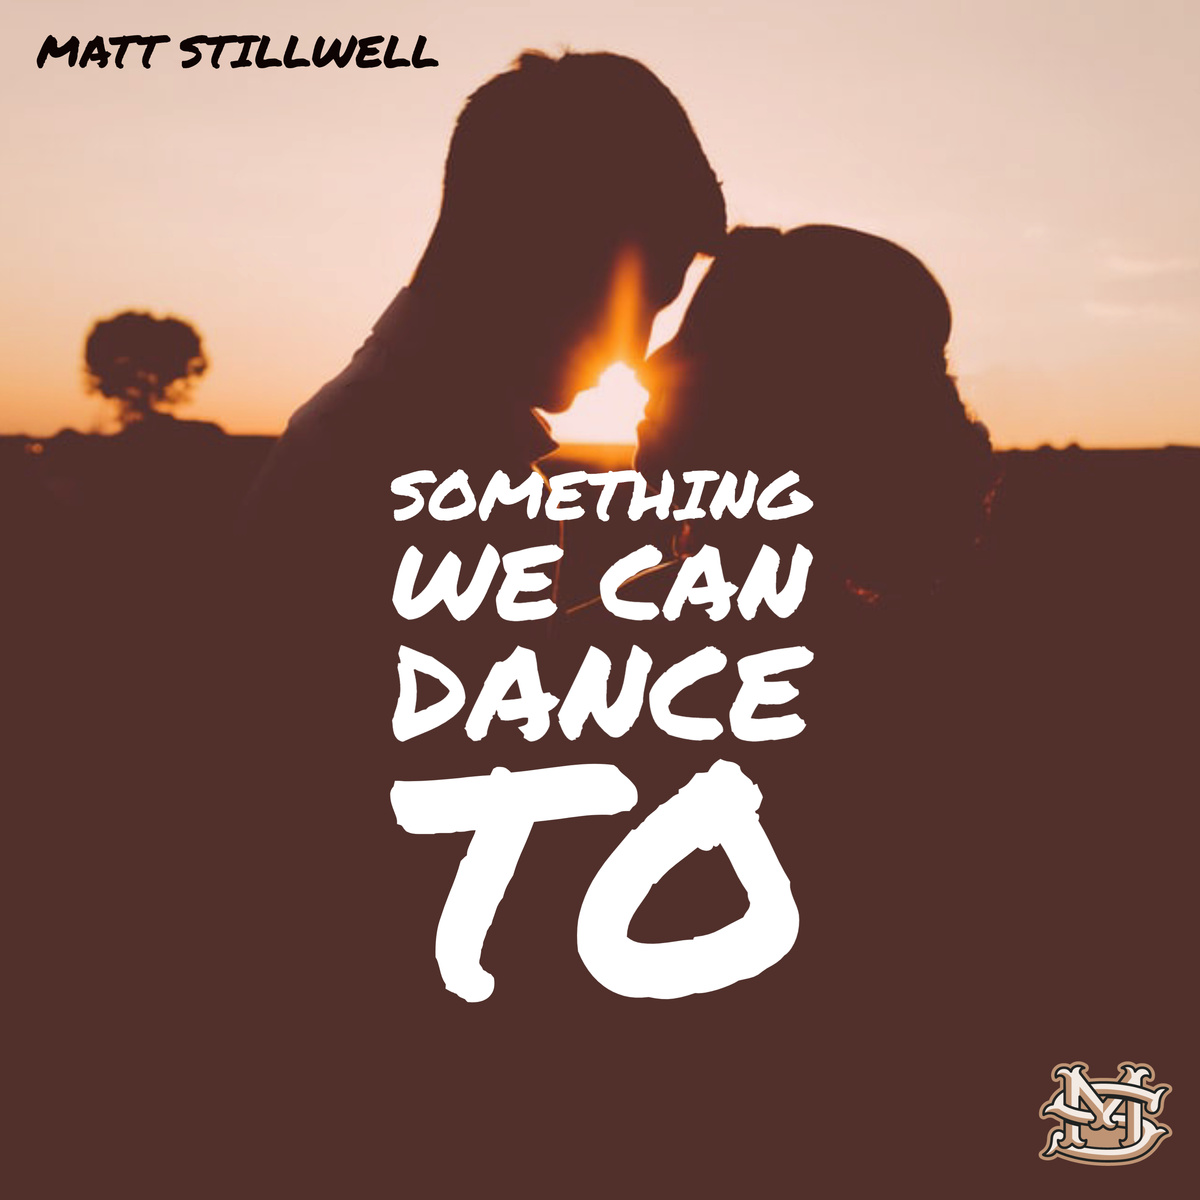 matt-stillwell-something